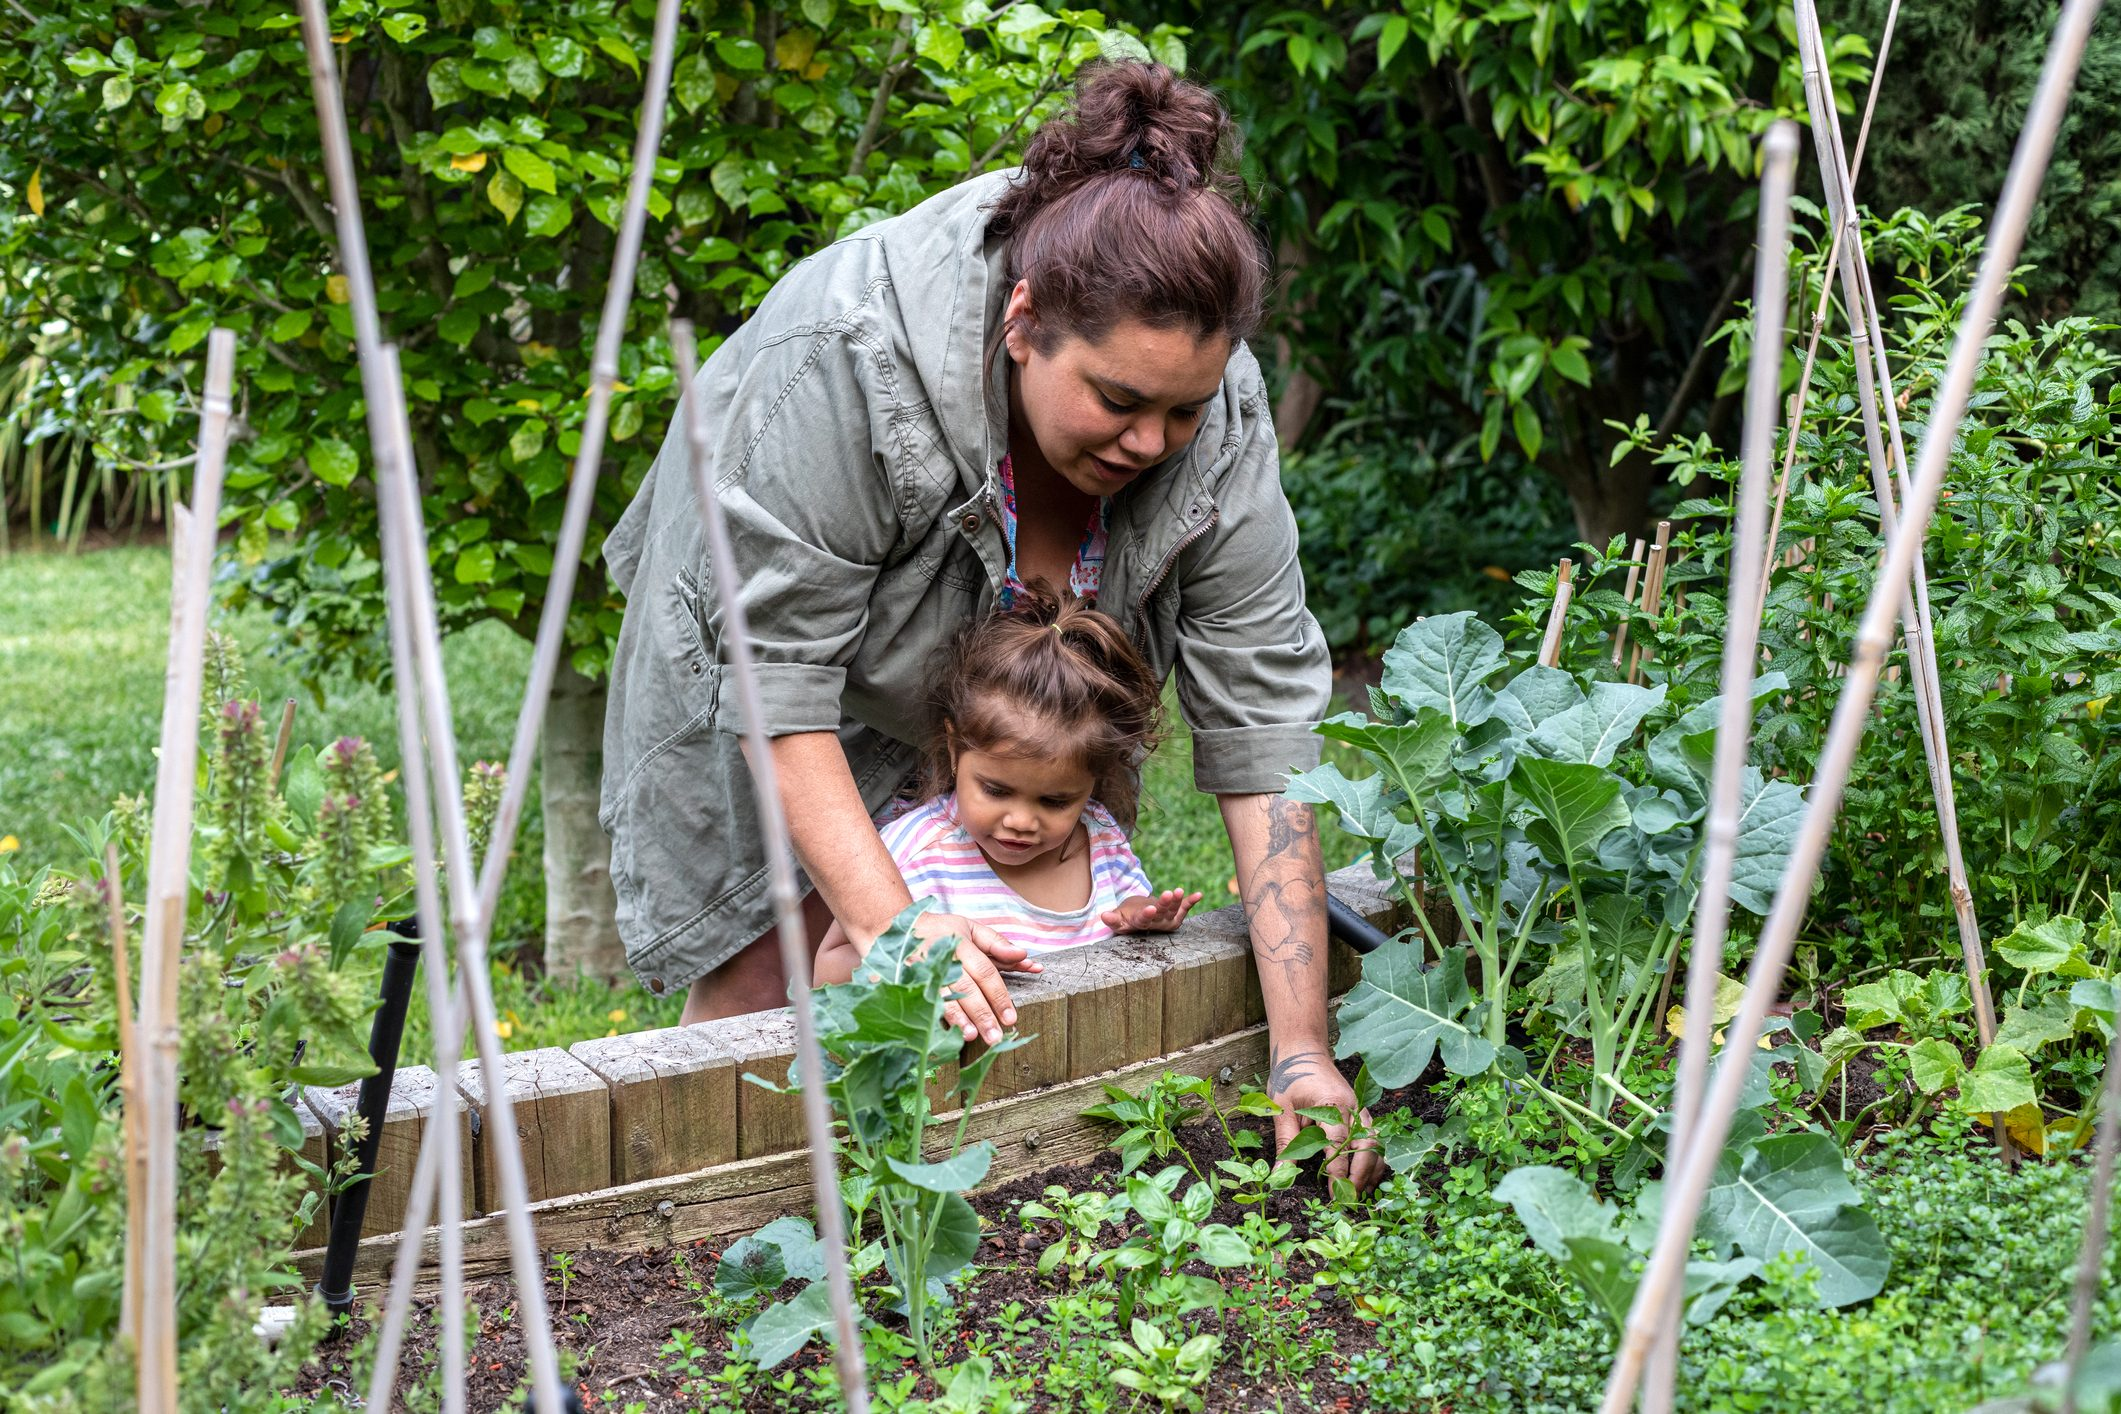 Indigenous women helping her young daughter in the garden